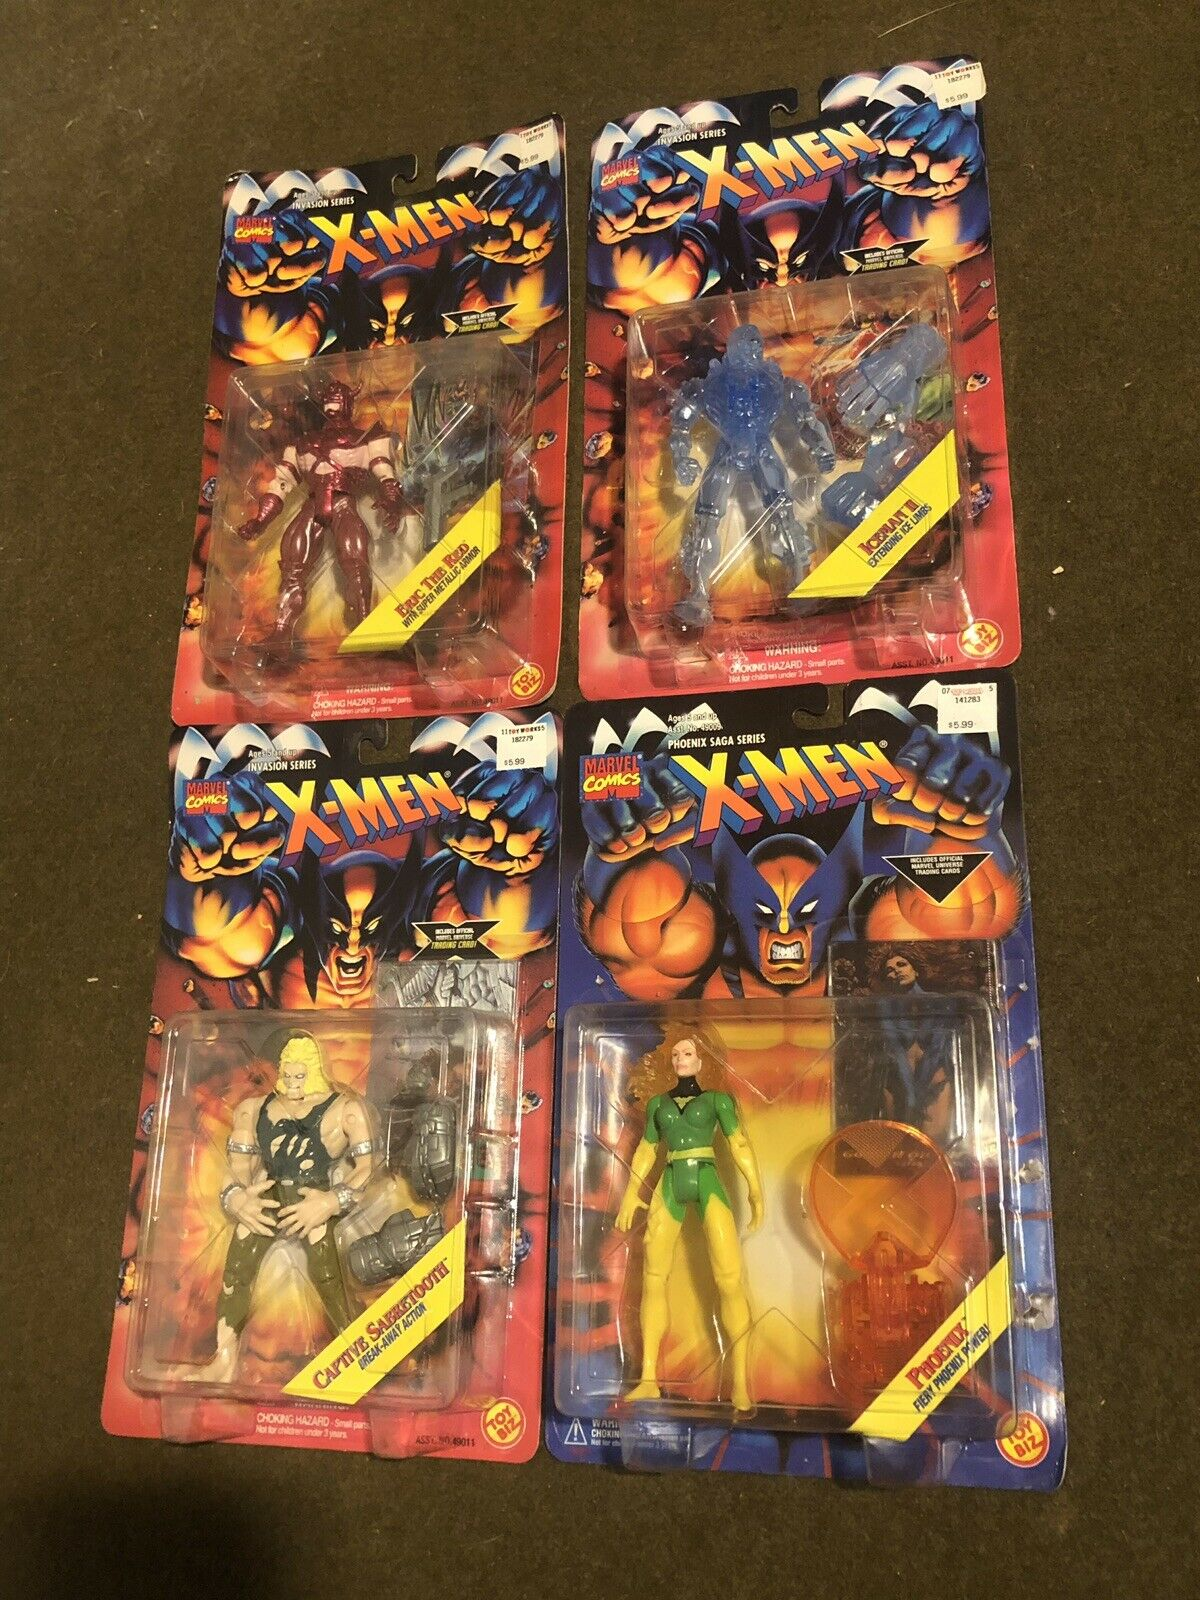 Xessi PHOENIX SABRETOOTH ICEuomo ERIC THE rosso 4 cifra LOT SEALED MARVEL giocattoloBIZ